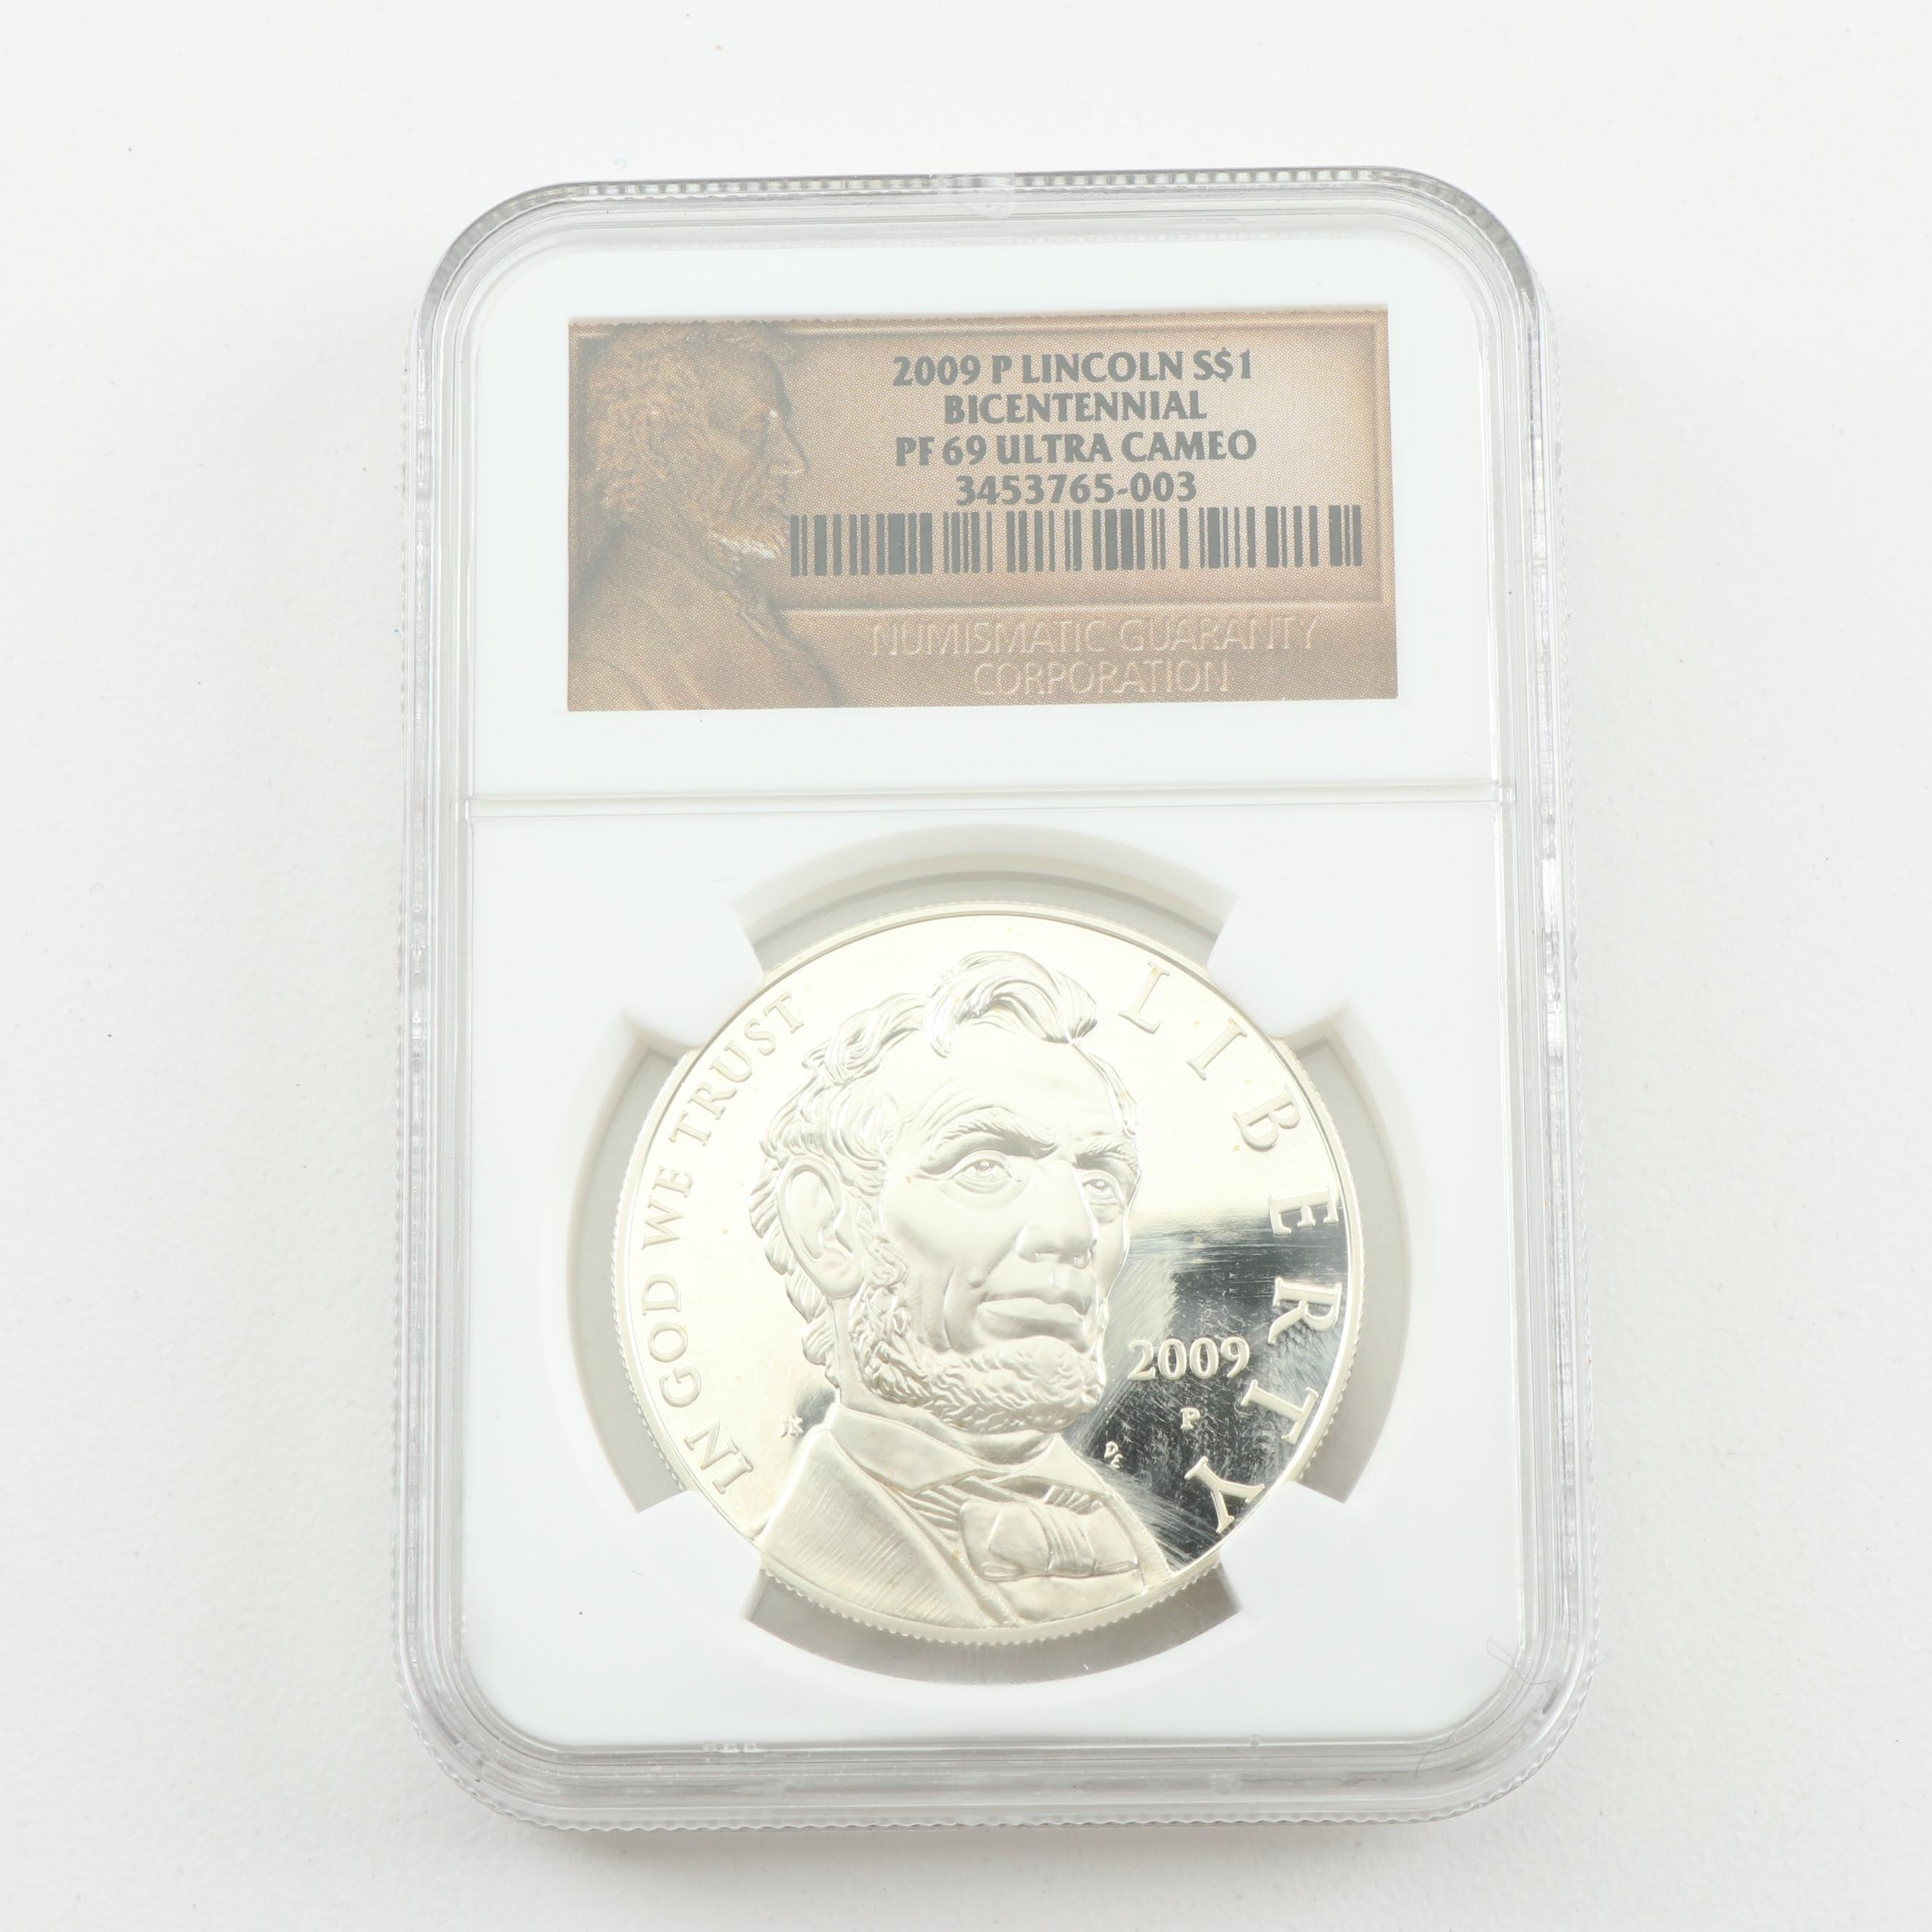 NGC Graded PF69 Ultra Cameo 2009 Lincoln Bicentennial $1 Commemorative Coin